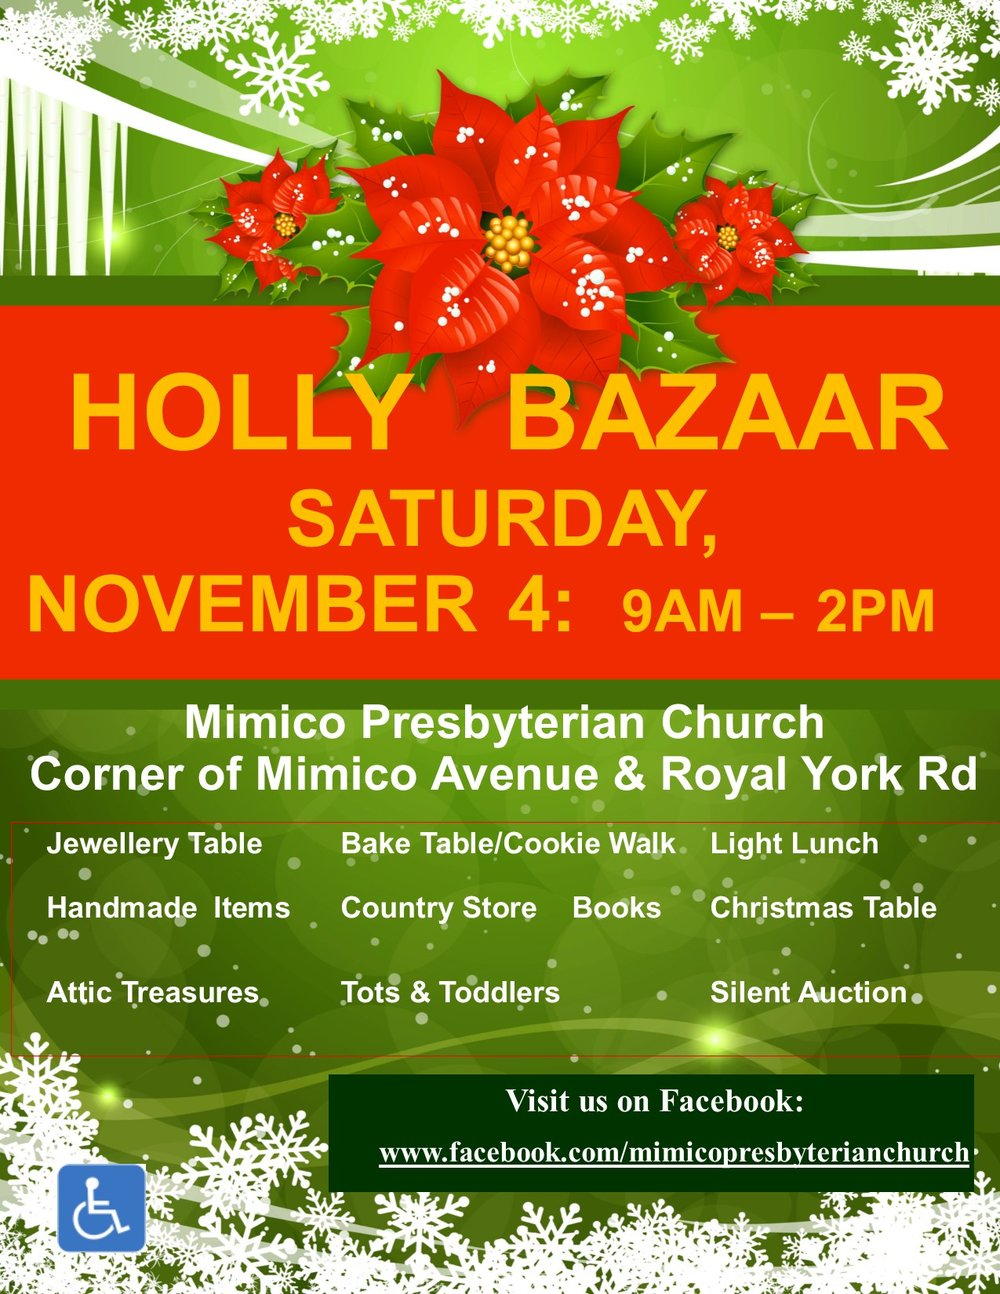 Holly Bazaar Flyer 2017.jpg